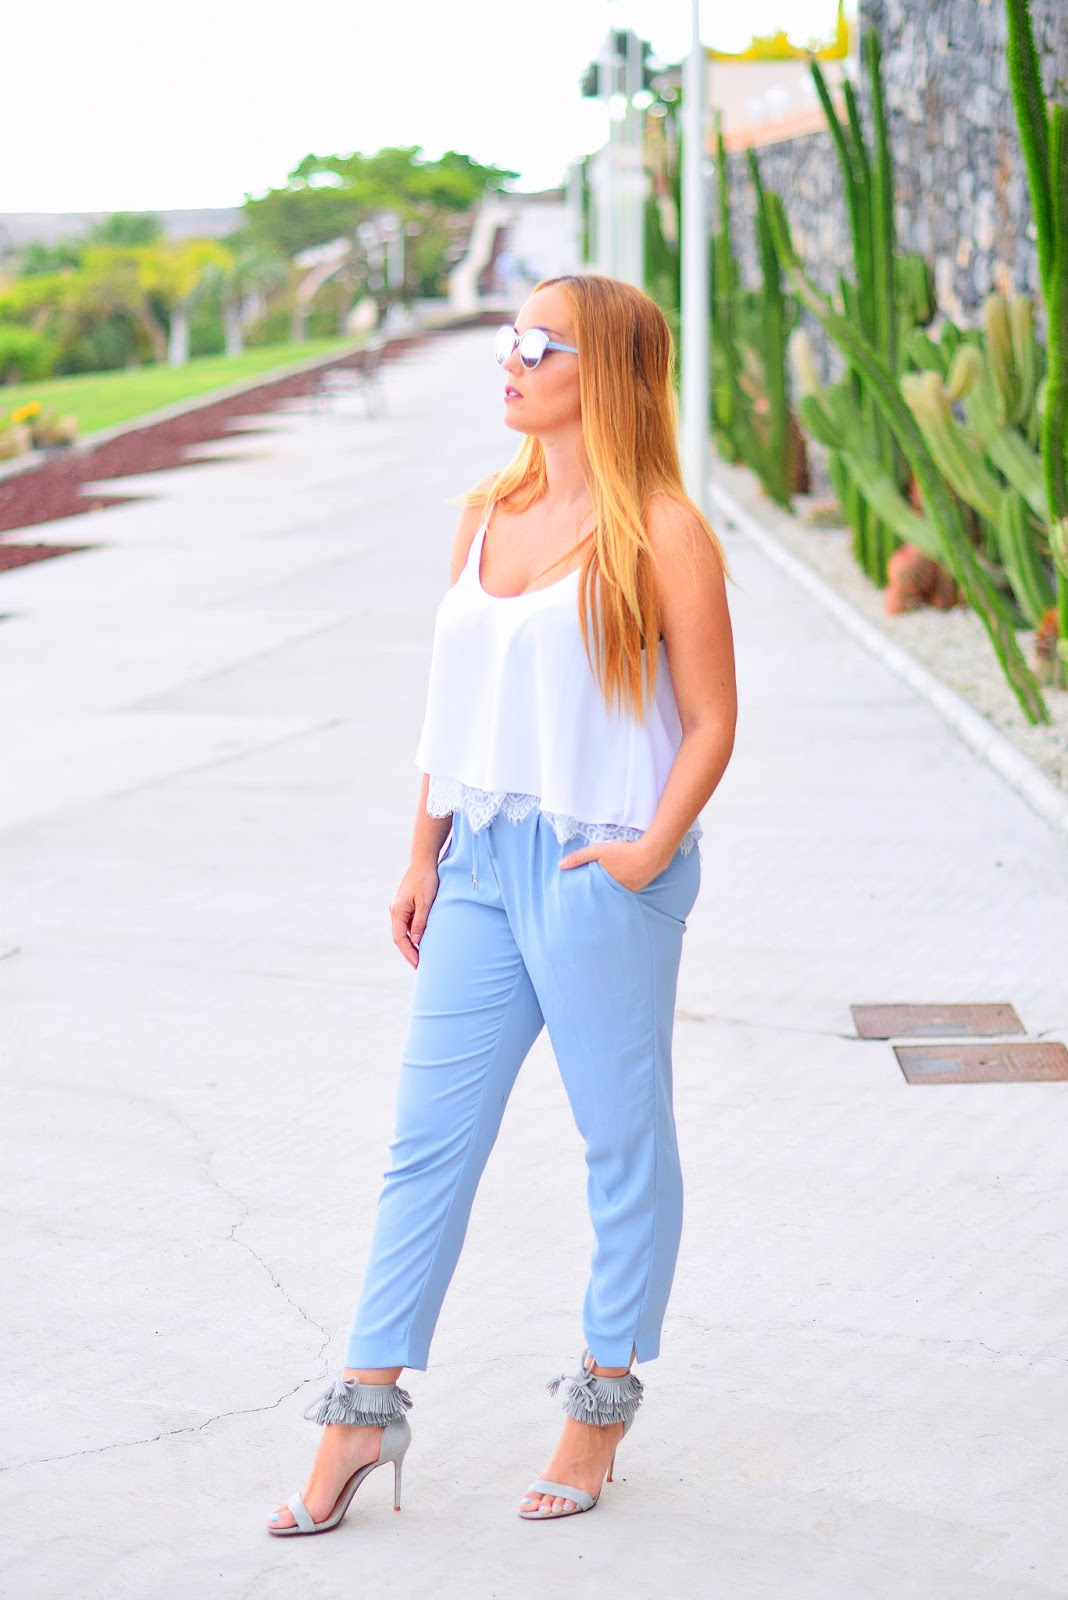 nery hdez, dior sun , optical h , azul serenidad, serenity blue, lace top, fringes shoes